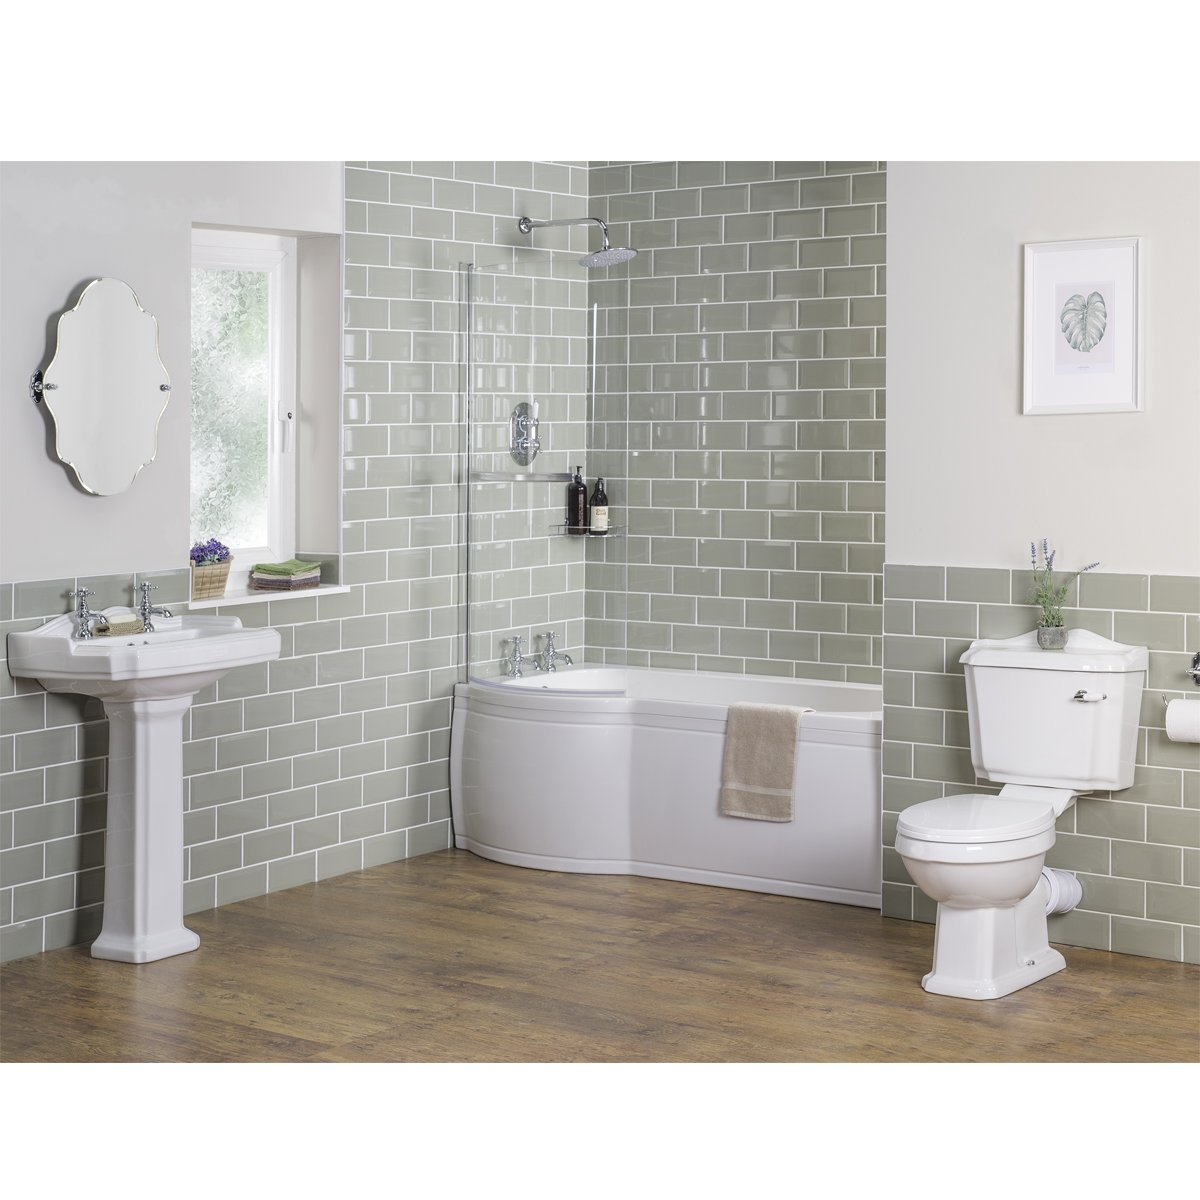 Aquariss Traditional Bathroom Toilet & Sink Basin Cloakroom Suite with Soft Close Seat